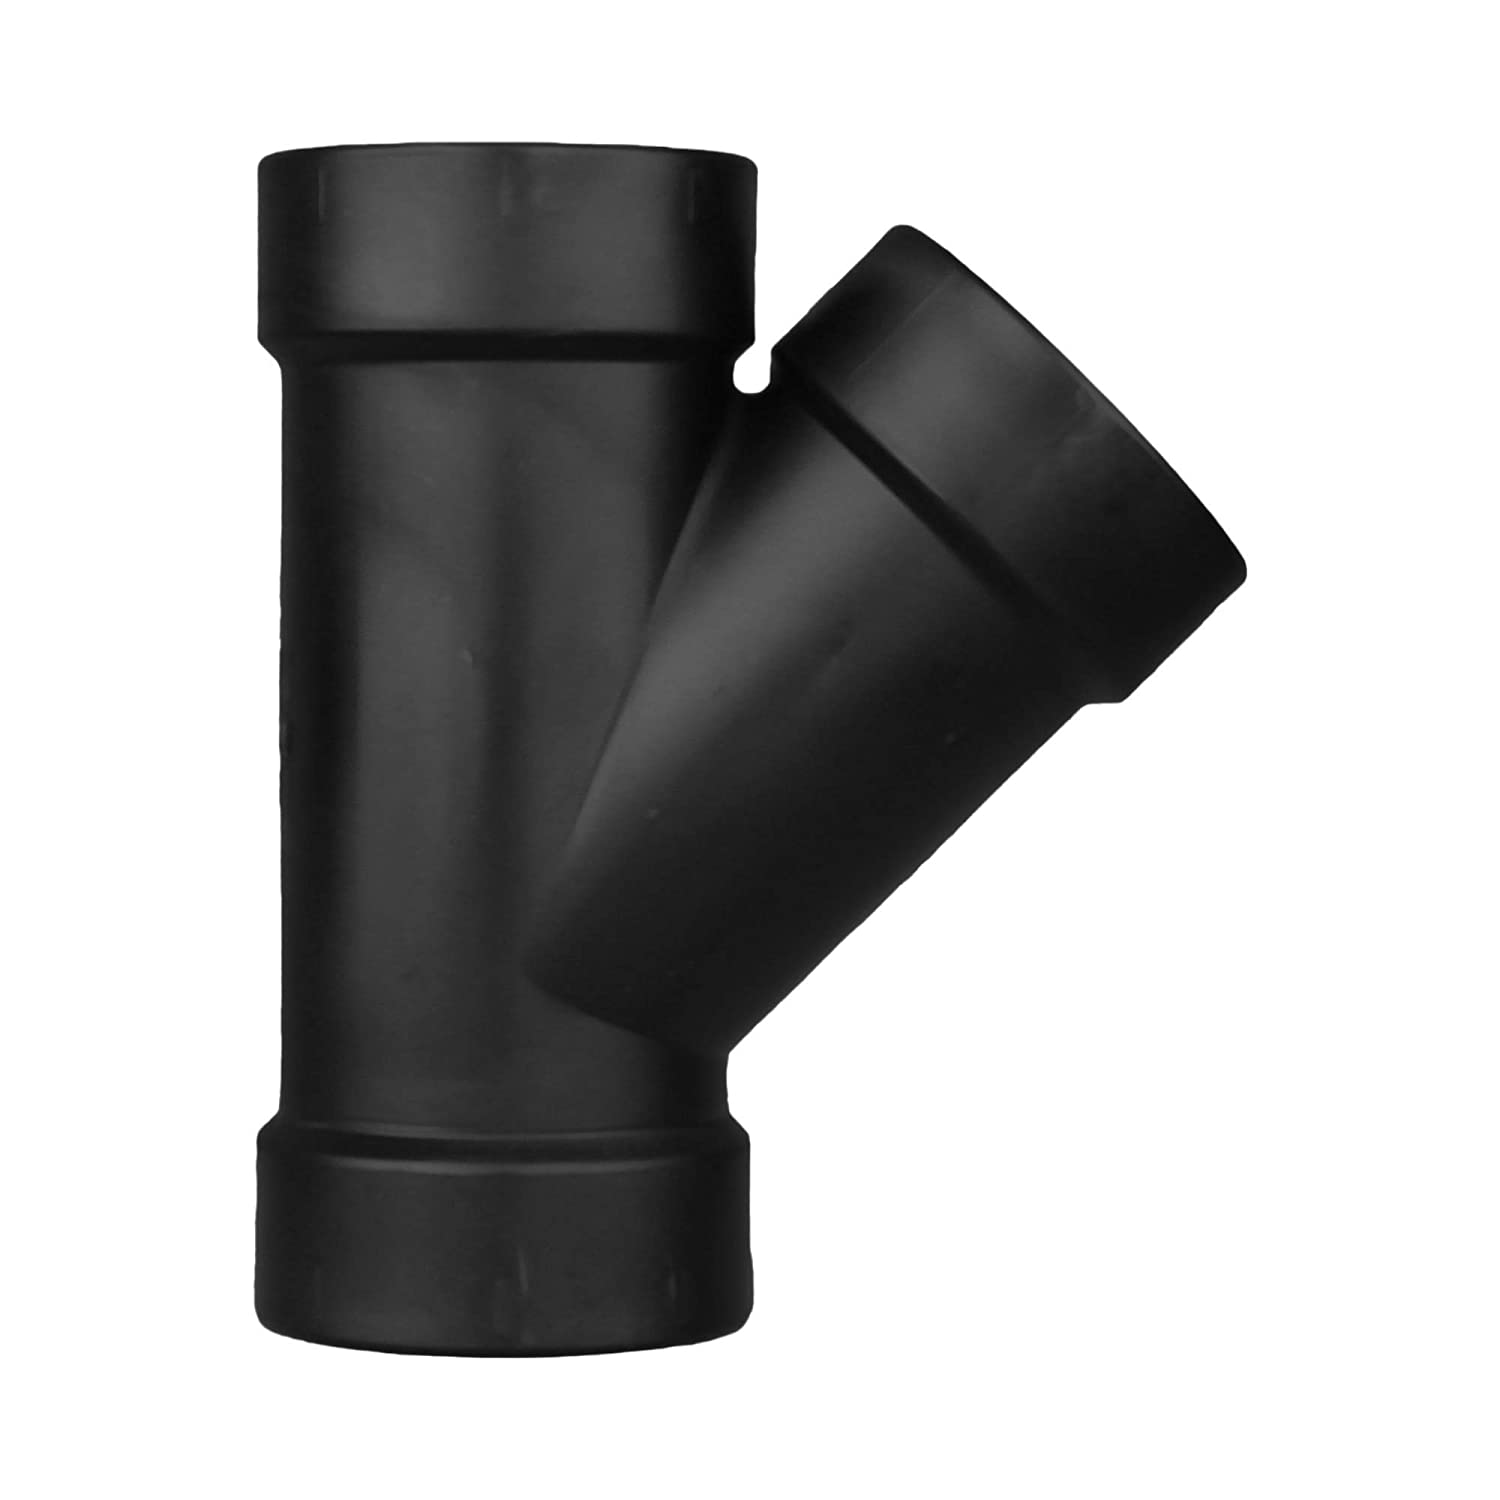 Charlotte Pipe 1-1//2 DWV Wye All Hub ABS DWV Schedule 40 Drain, Waste and Vent Single Unit